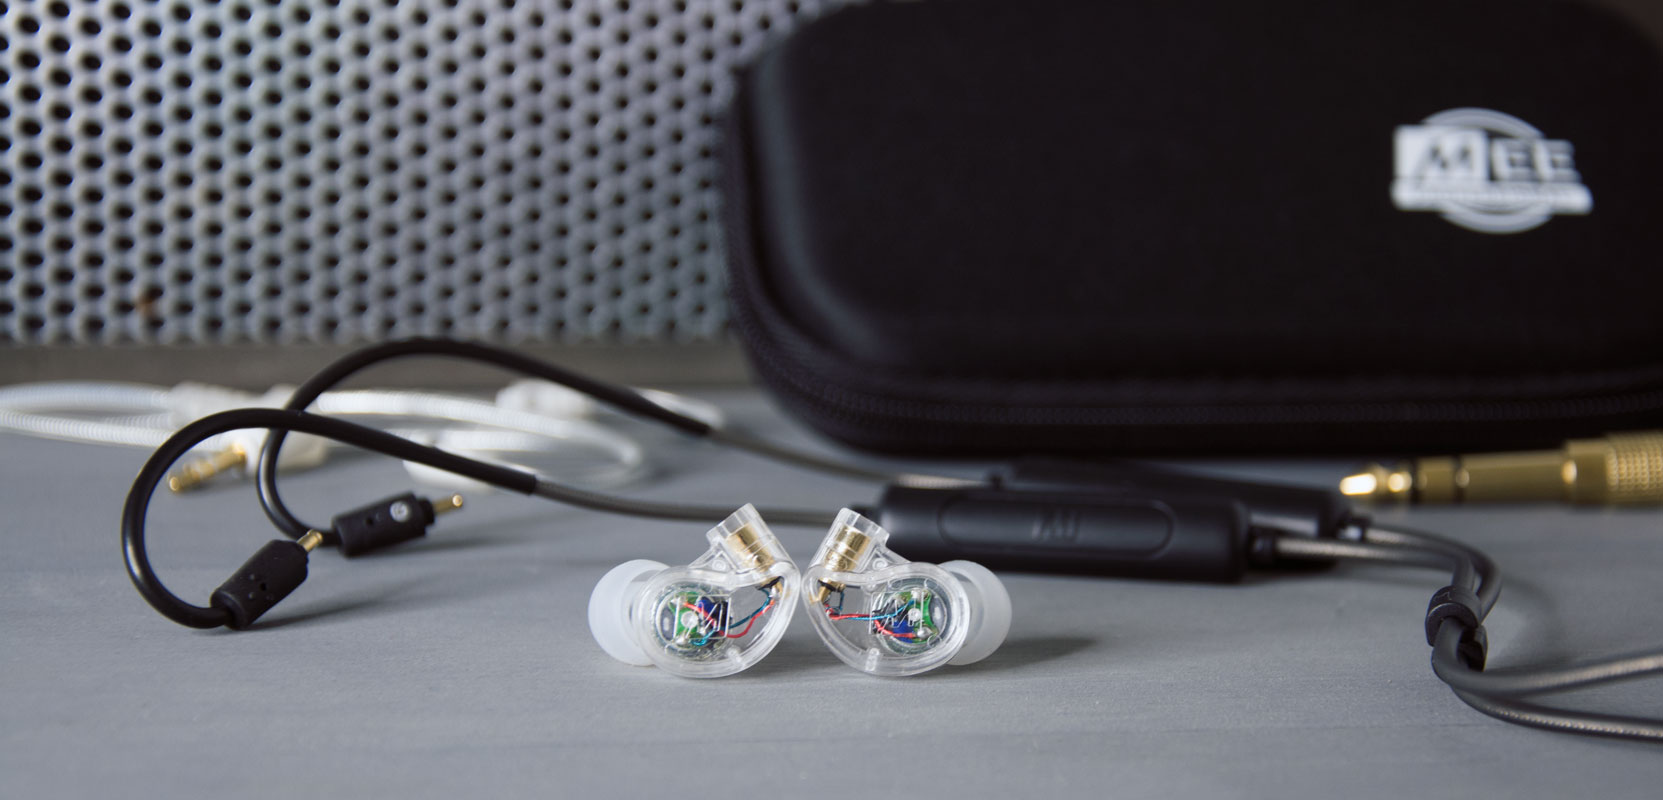 Pair of EP-M6PROG2 earpieces (clear) with detached Bluetooth adapter in background